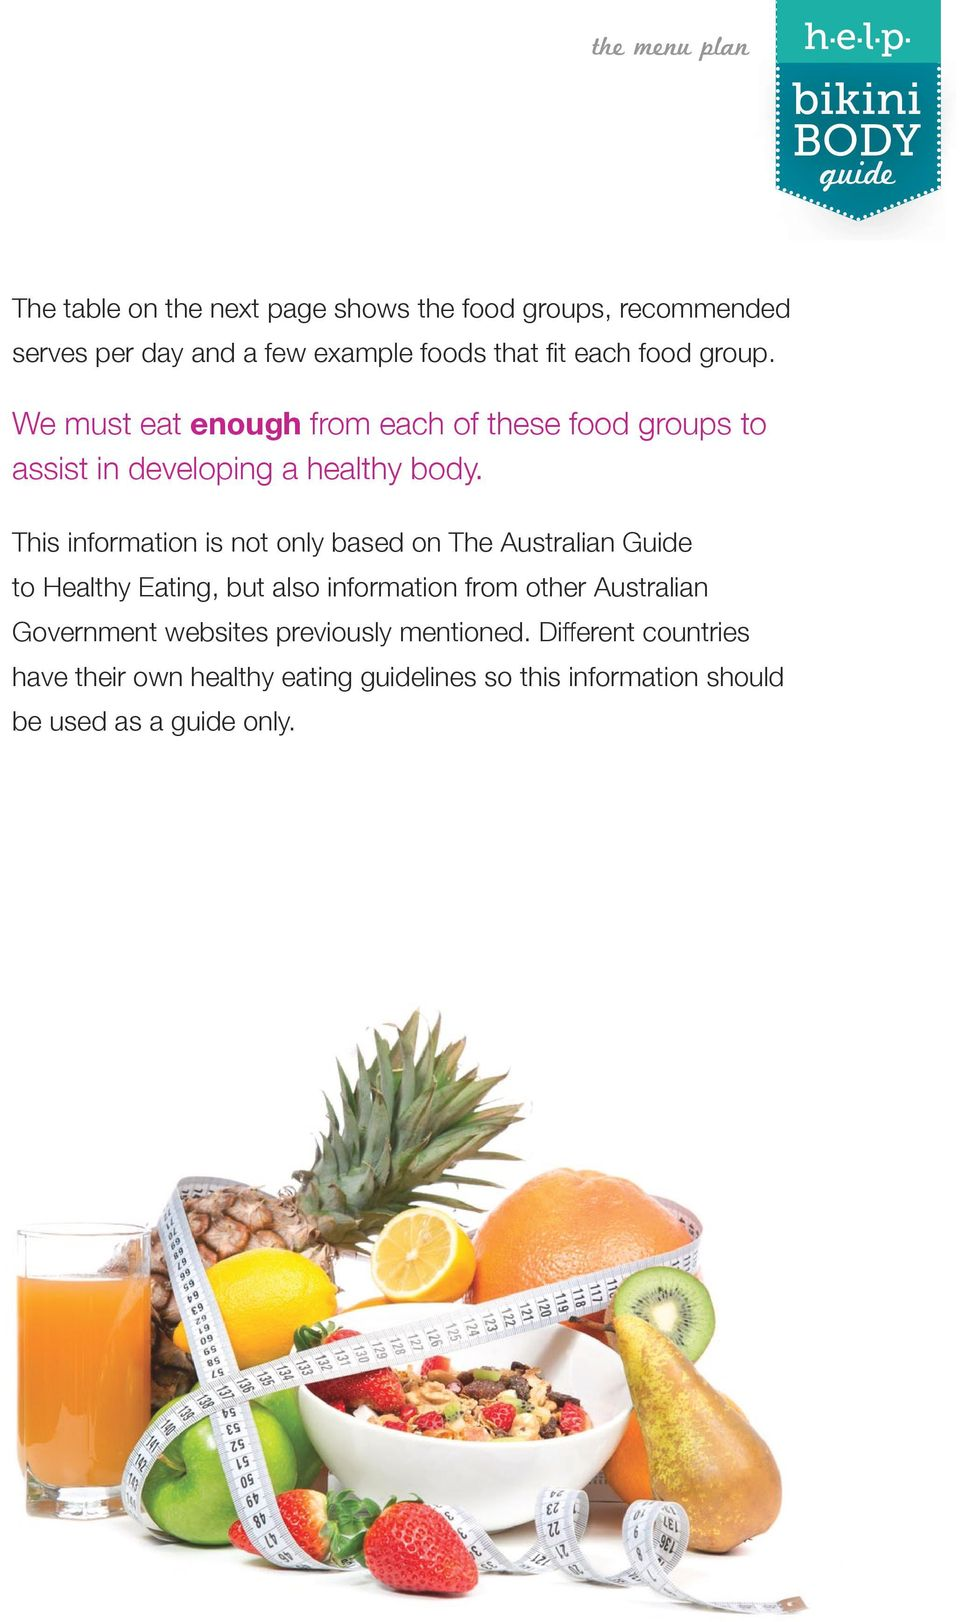 This information is not only based on The Australian Guide to Healthy Eating, but also information from other Australian